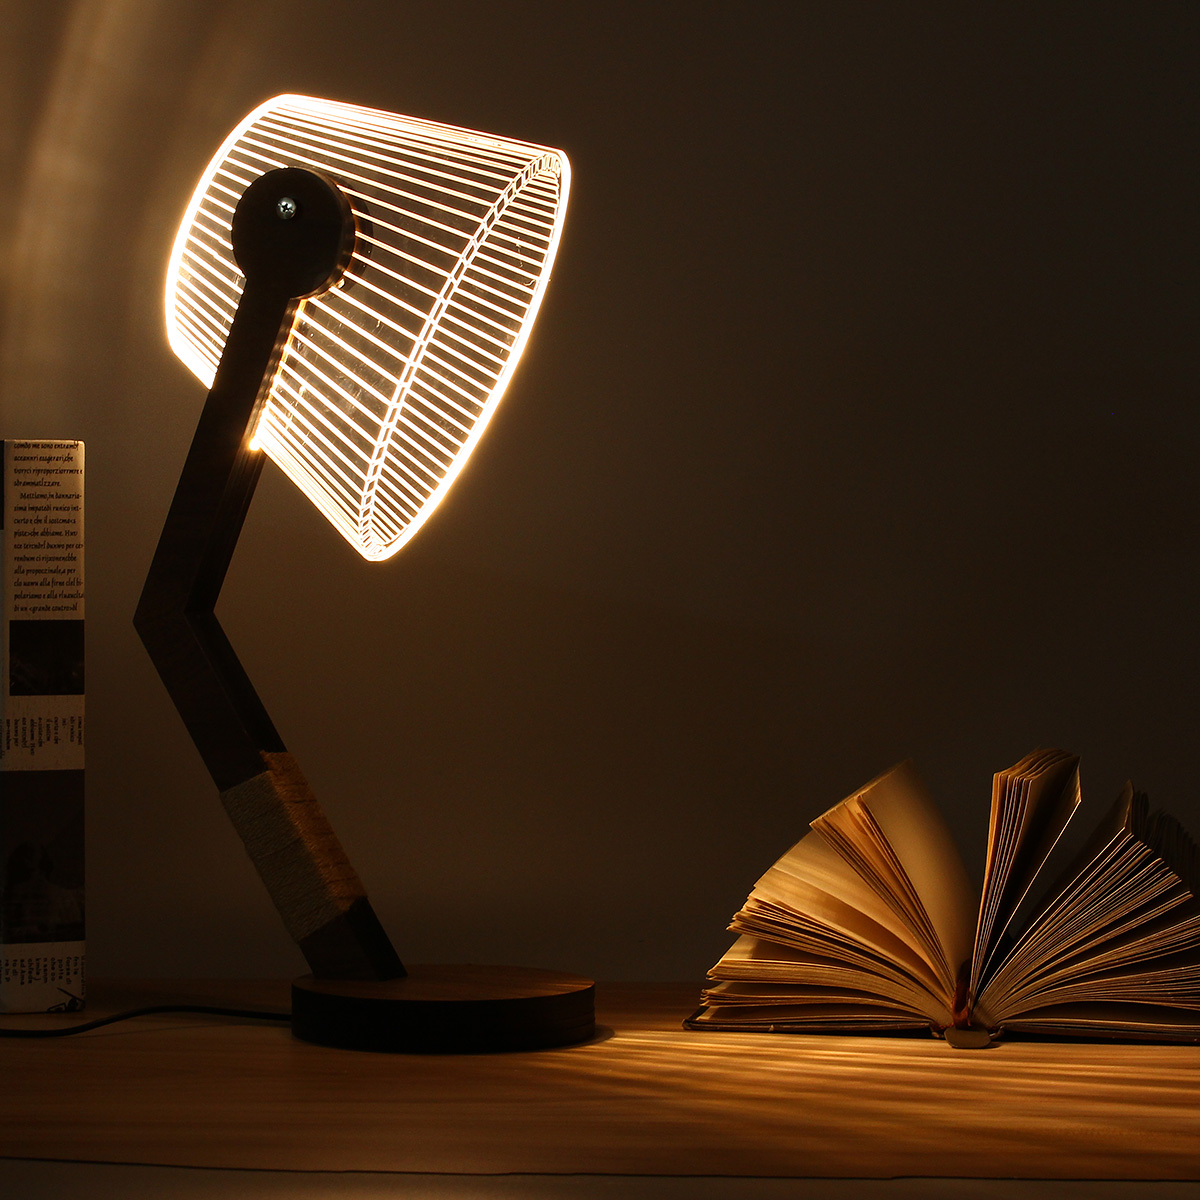 Night Lights Adjustable 3D Wooden Stand Lamp Night Light Bedroom Table Desk Lamp Warm White Lighting Plug Connector Home Decor adjustable owl shaped 3d wooden stand lamp night light bedroom table desk lamp warm white lighting plug connector home decor